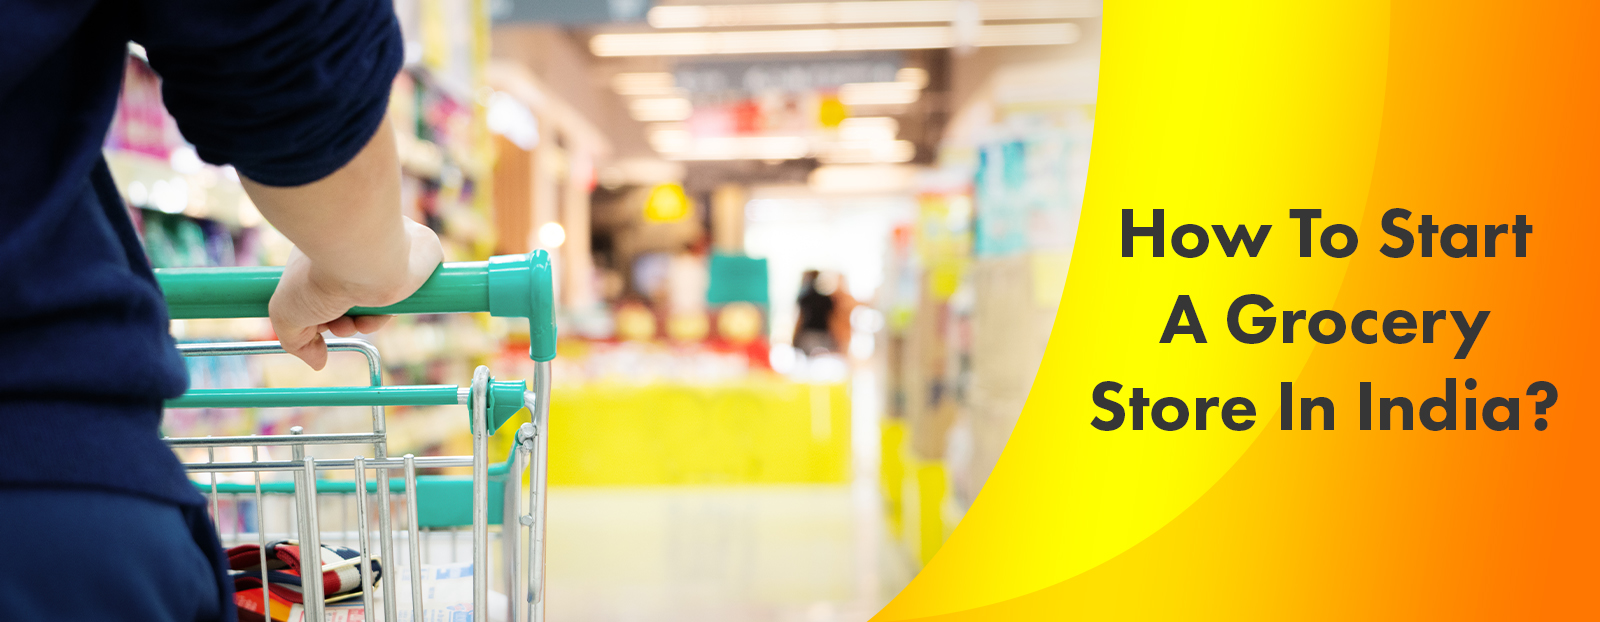 How To Start A Grocery Store In India?